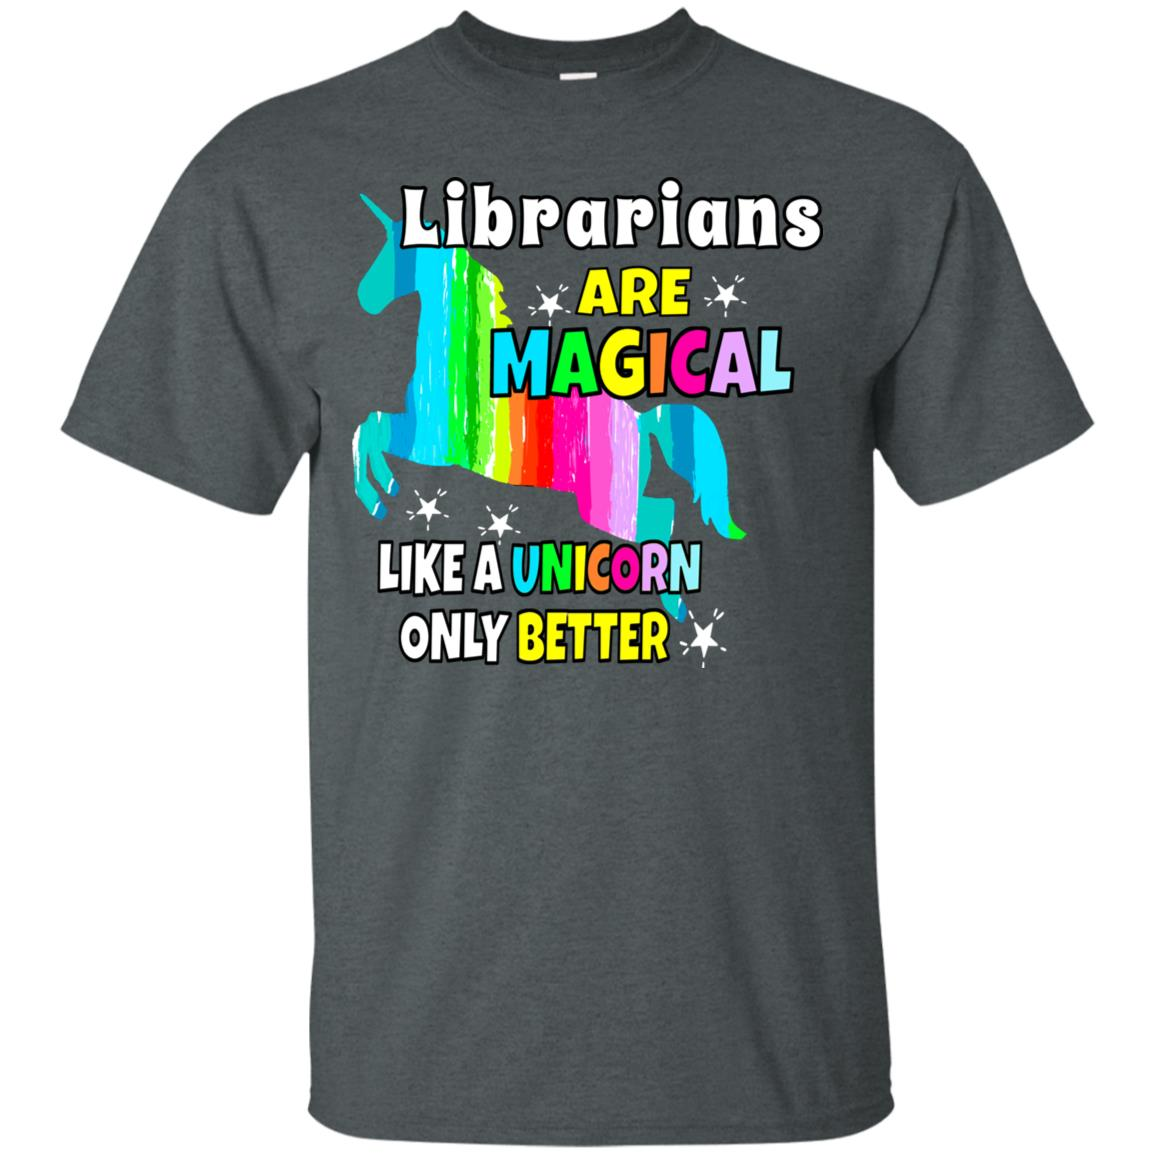 Librarians Magical Like a Unicorn Tee Unisex Short Sleeve